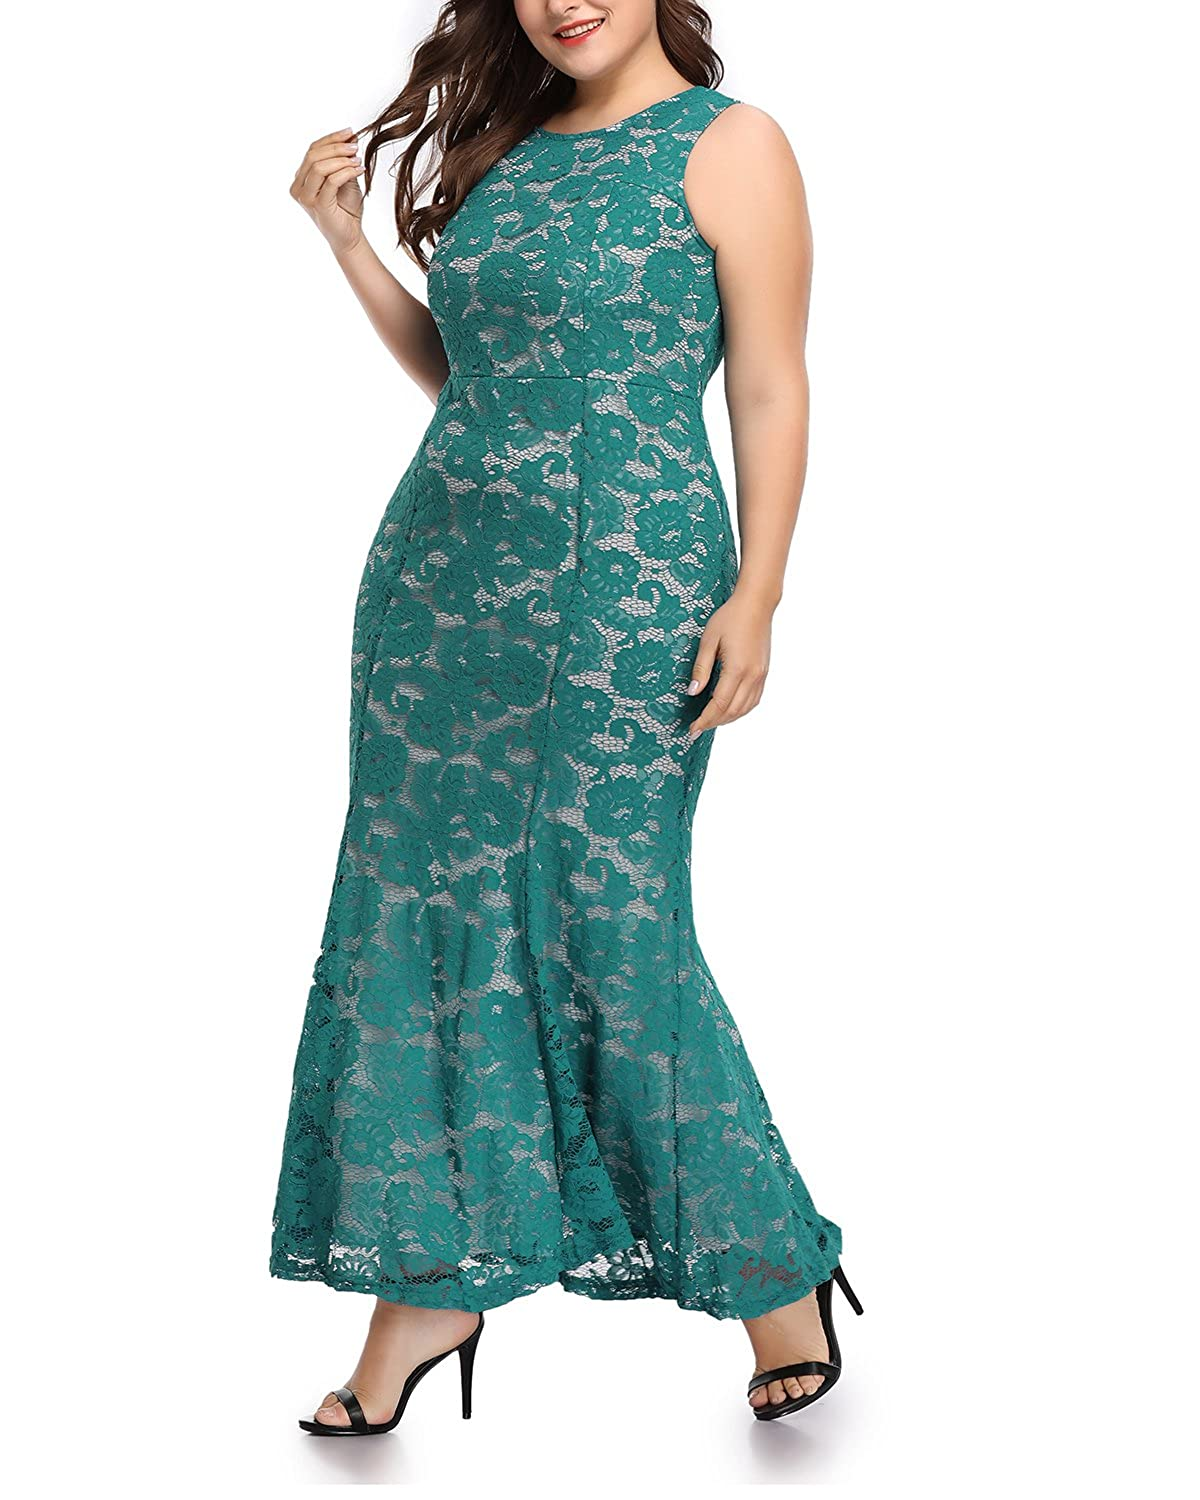 57730f108dcb 3 Colors: Black, Wine, Green / 5 Size: 16W , 18W, 20W, 22W, 24W Premium  Fabric: (Front)Lace / (Lining)Polyester+ Spandex (soft and healthy to skin).